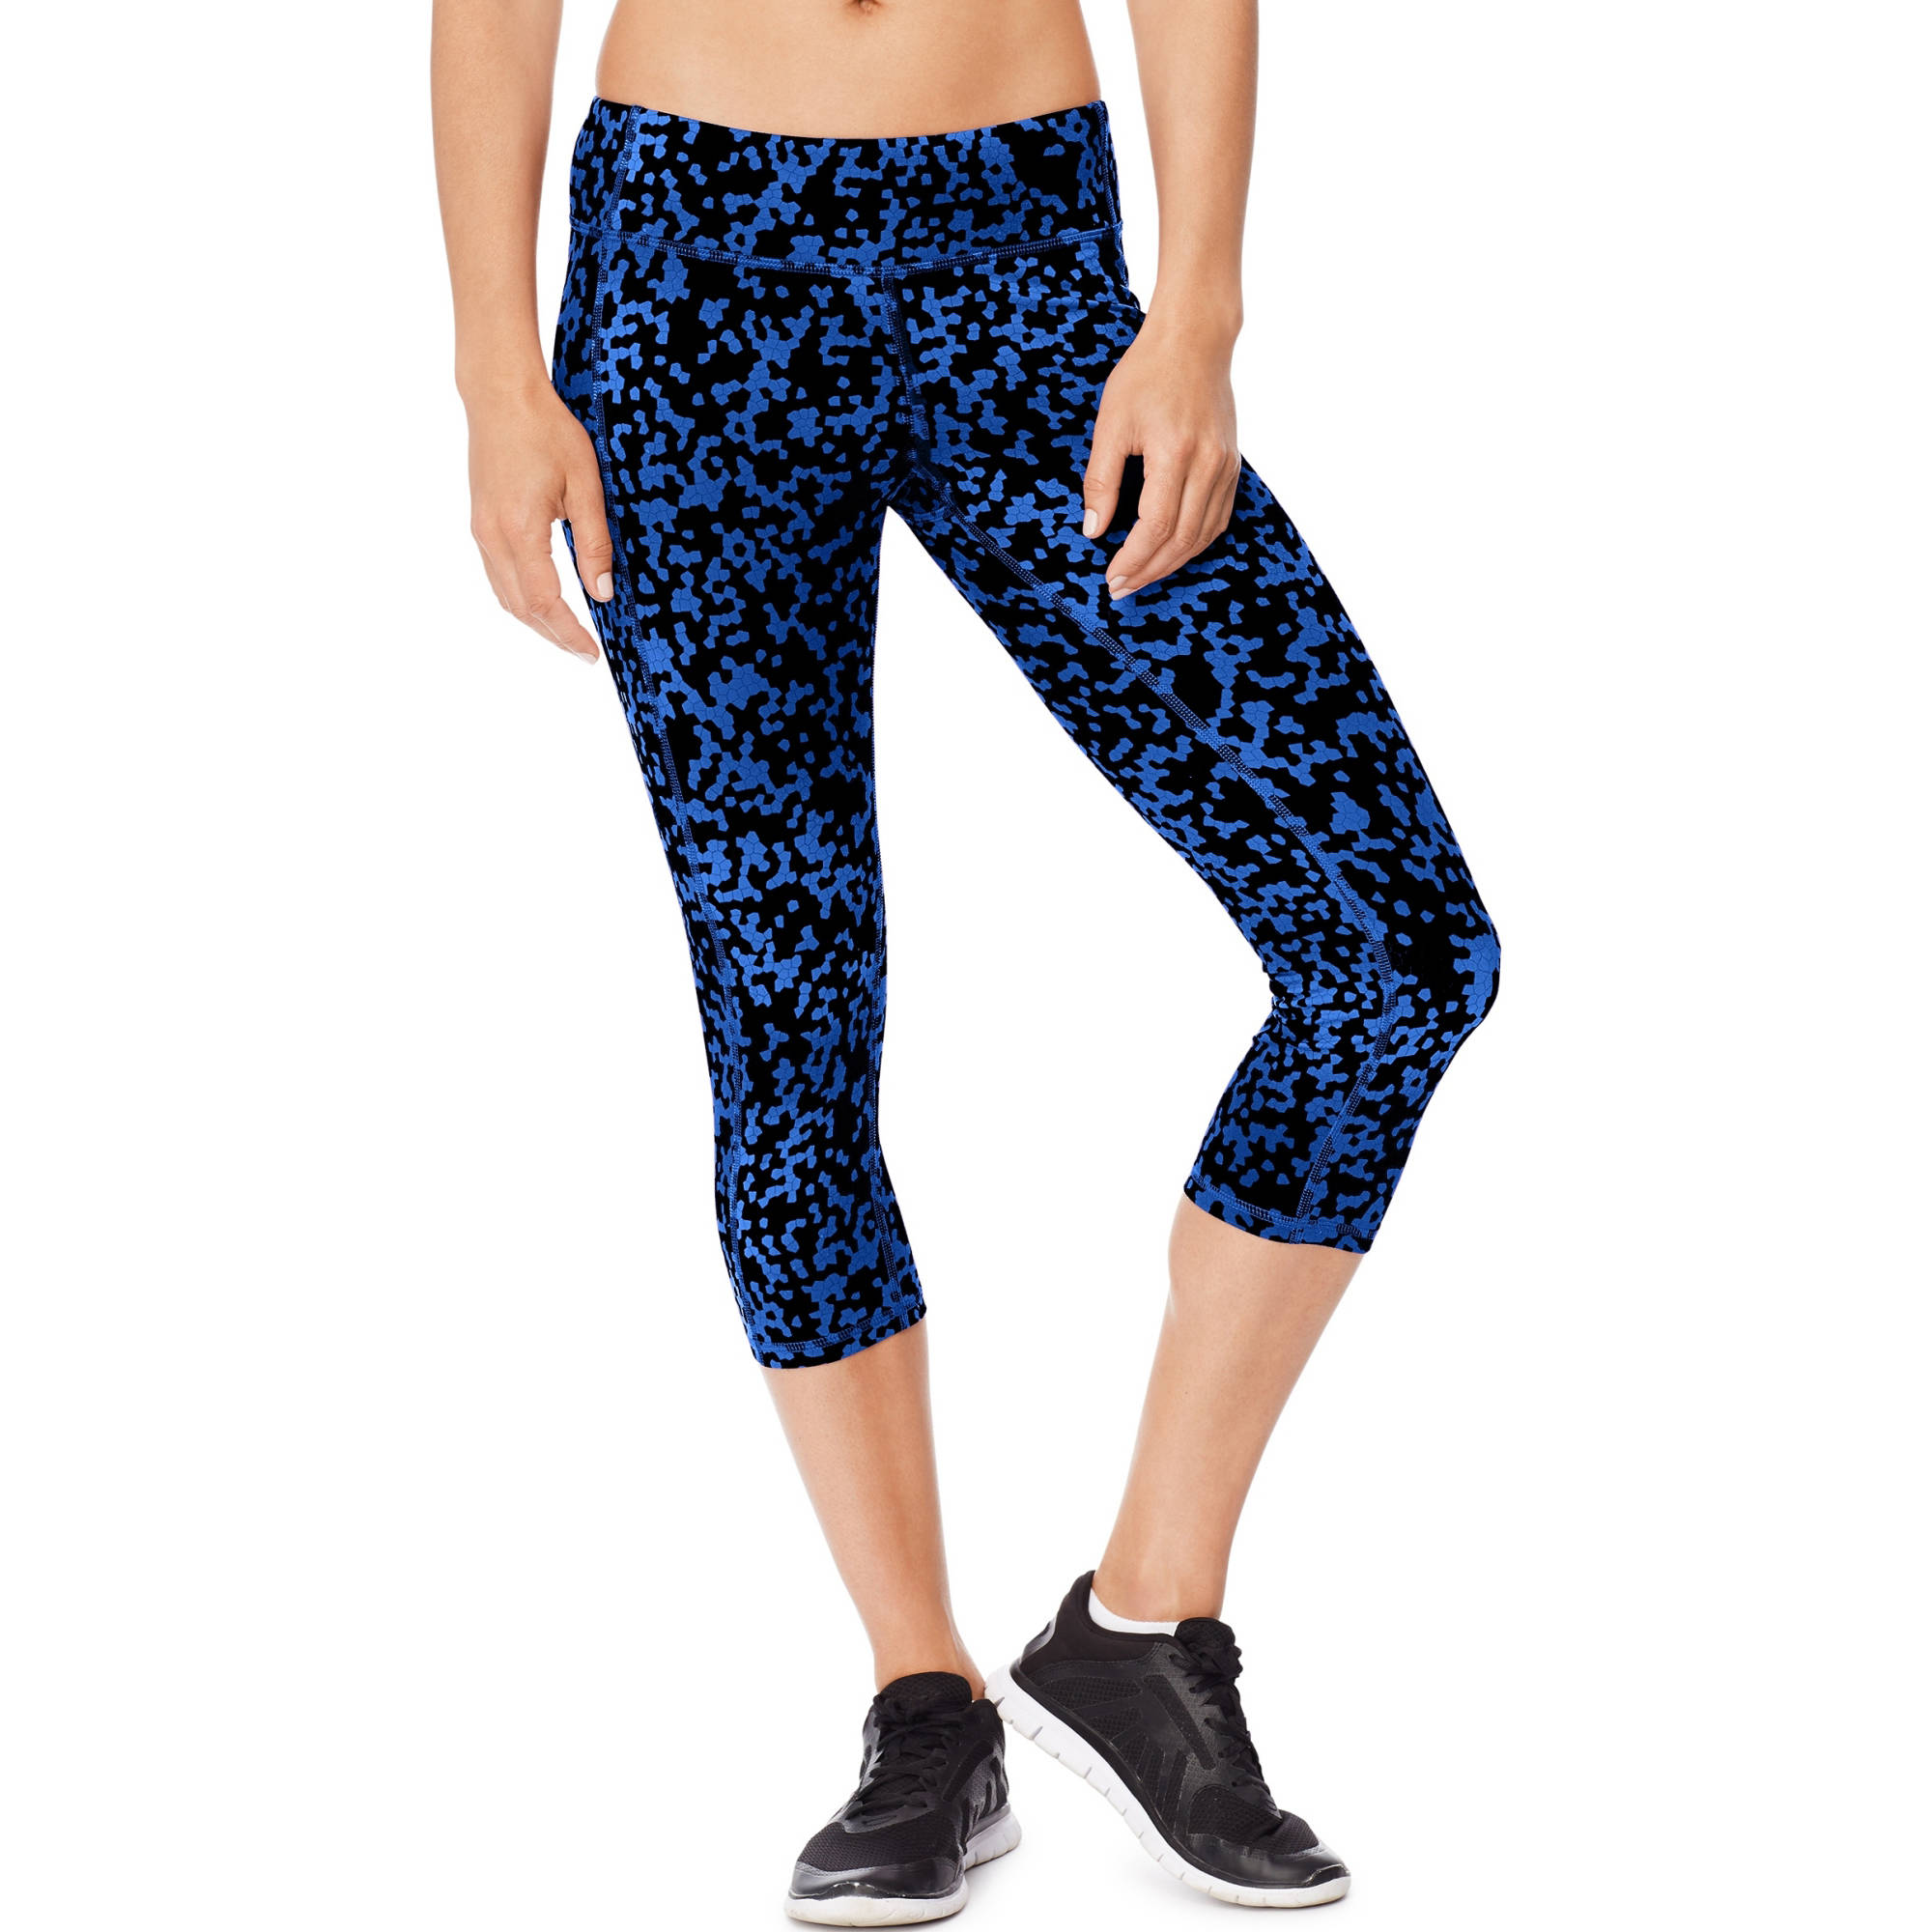 Hanes Sport Women's Performance Capri Leggings